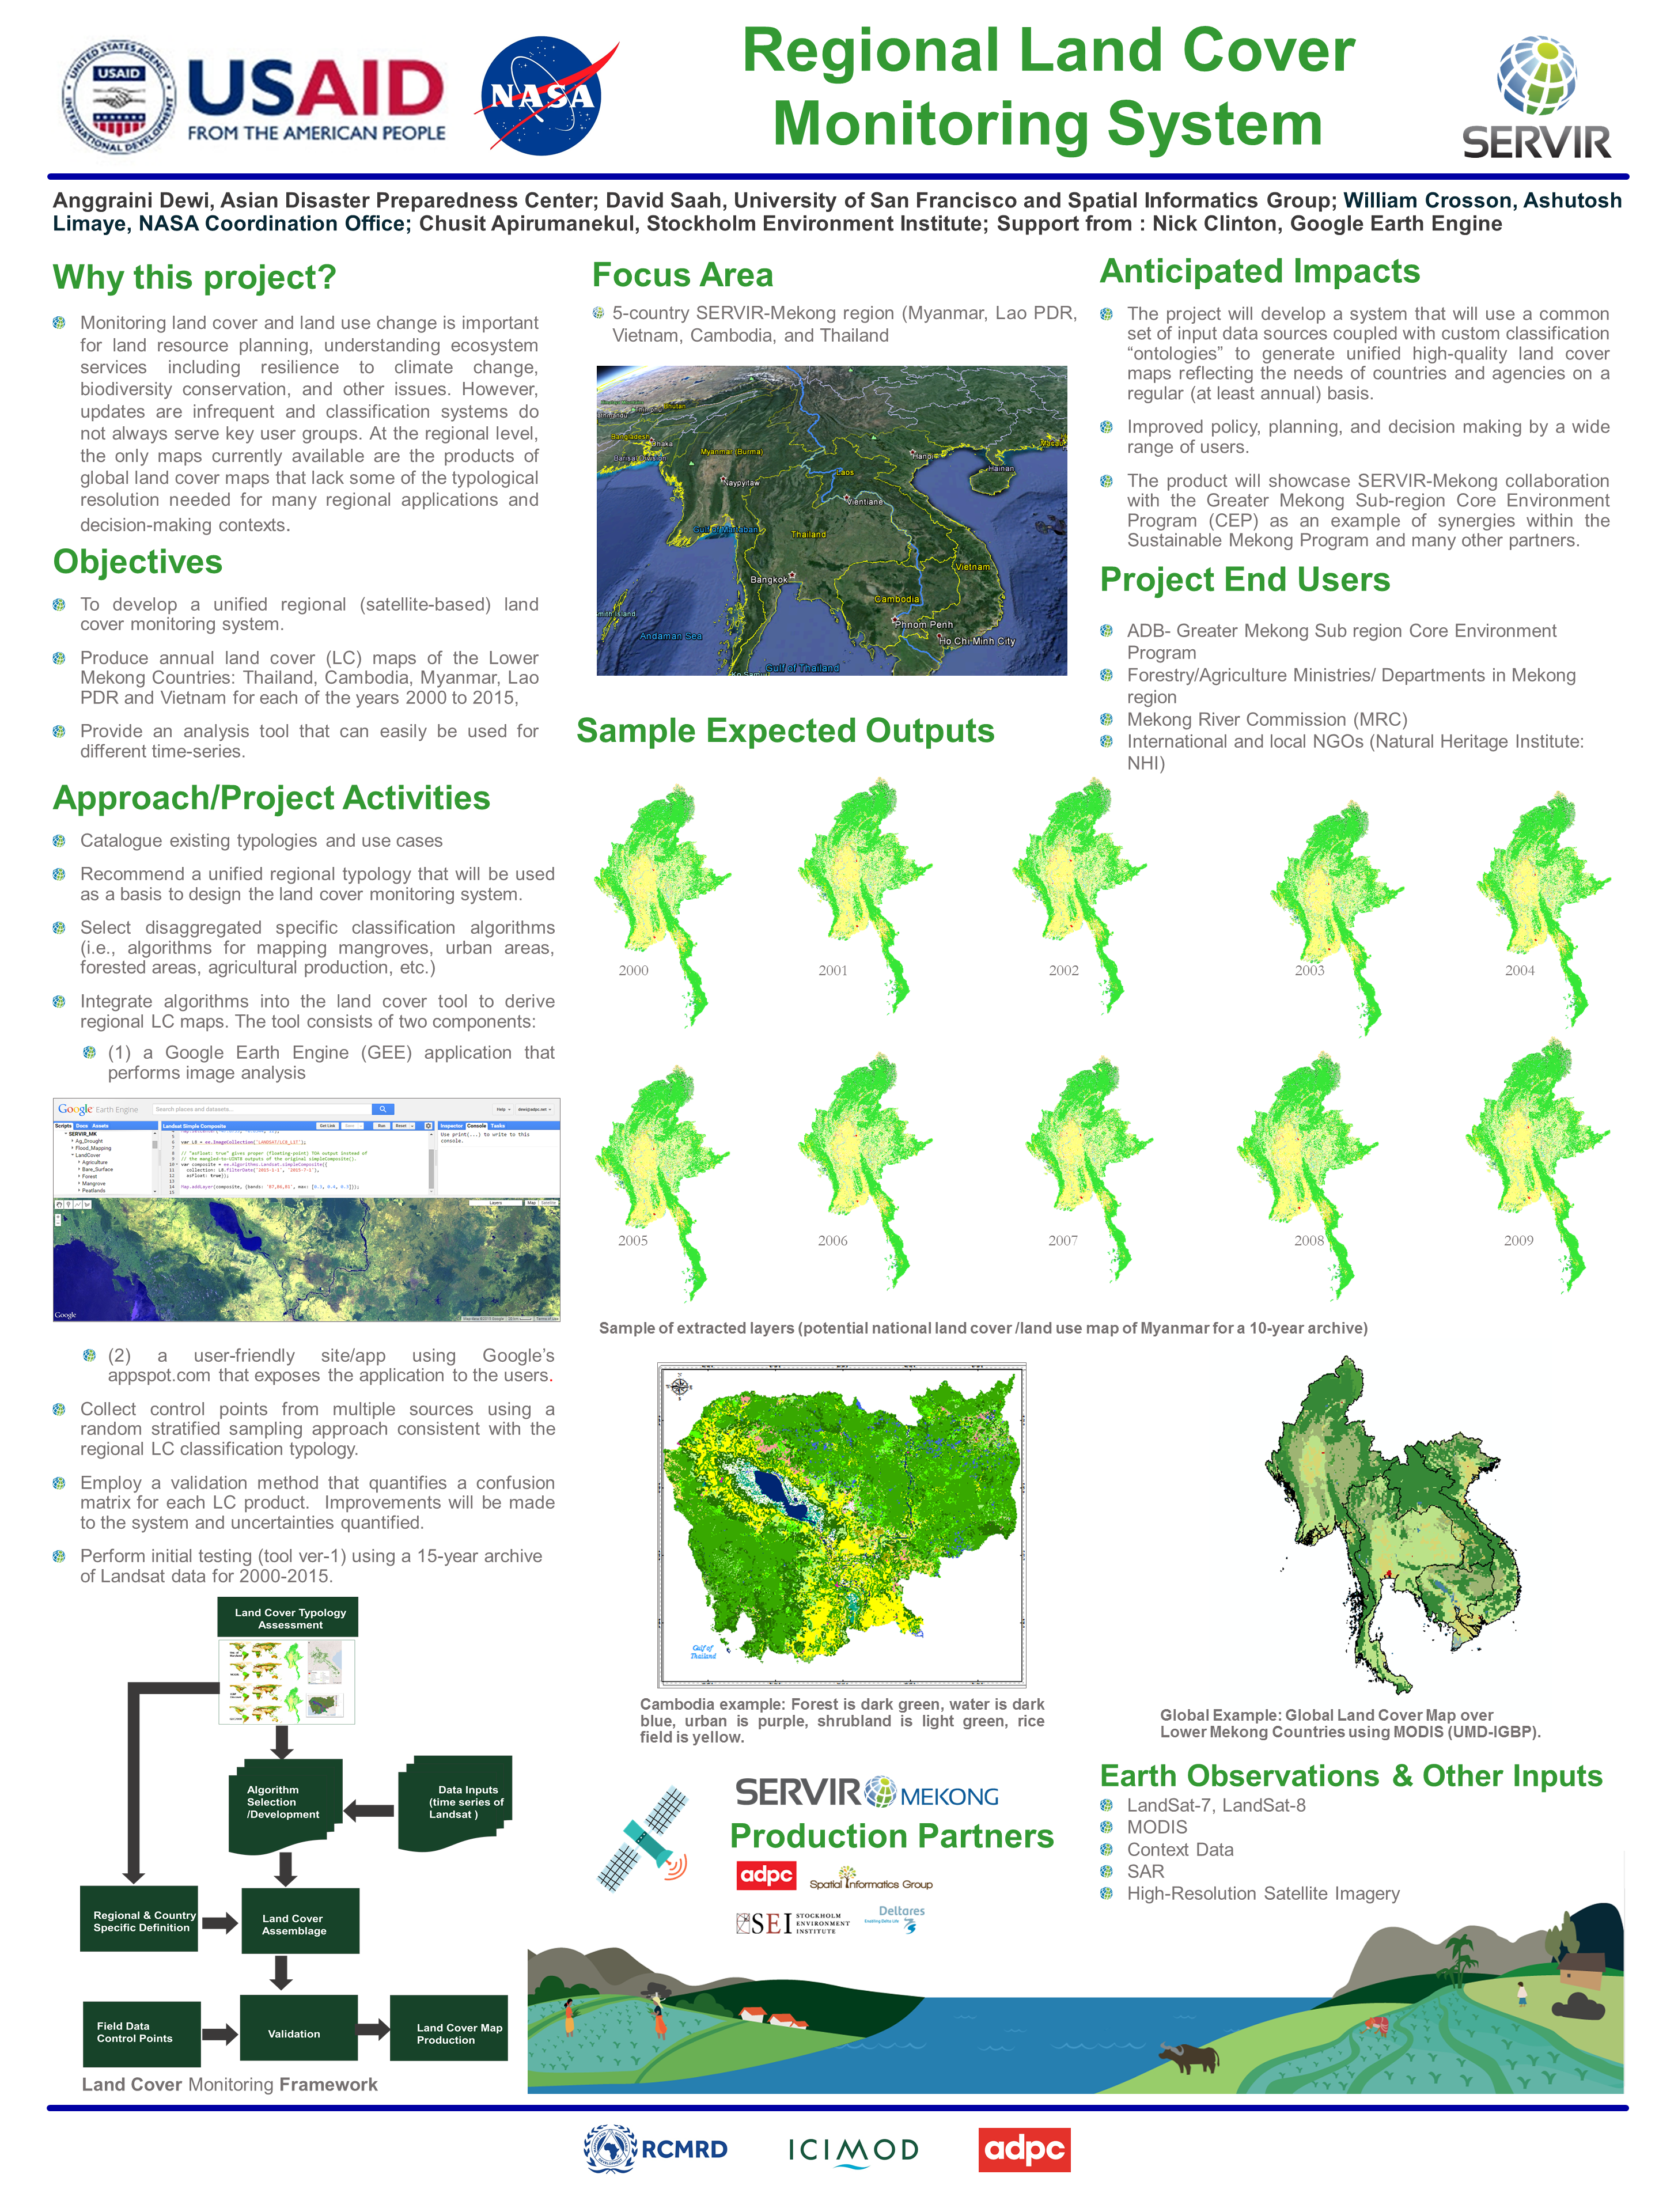 Regional Land Cover Monitoring System